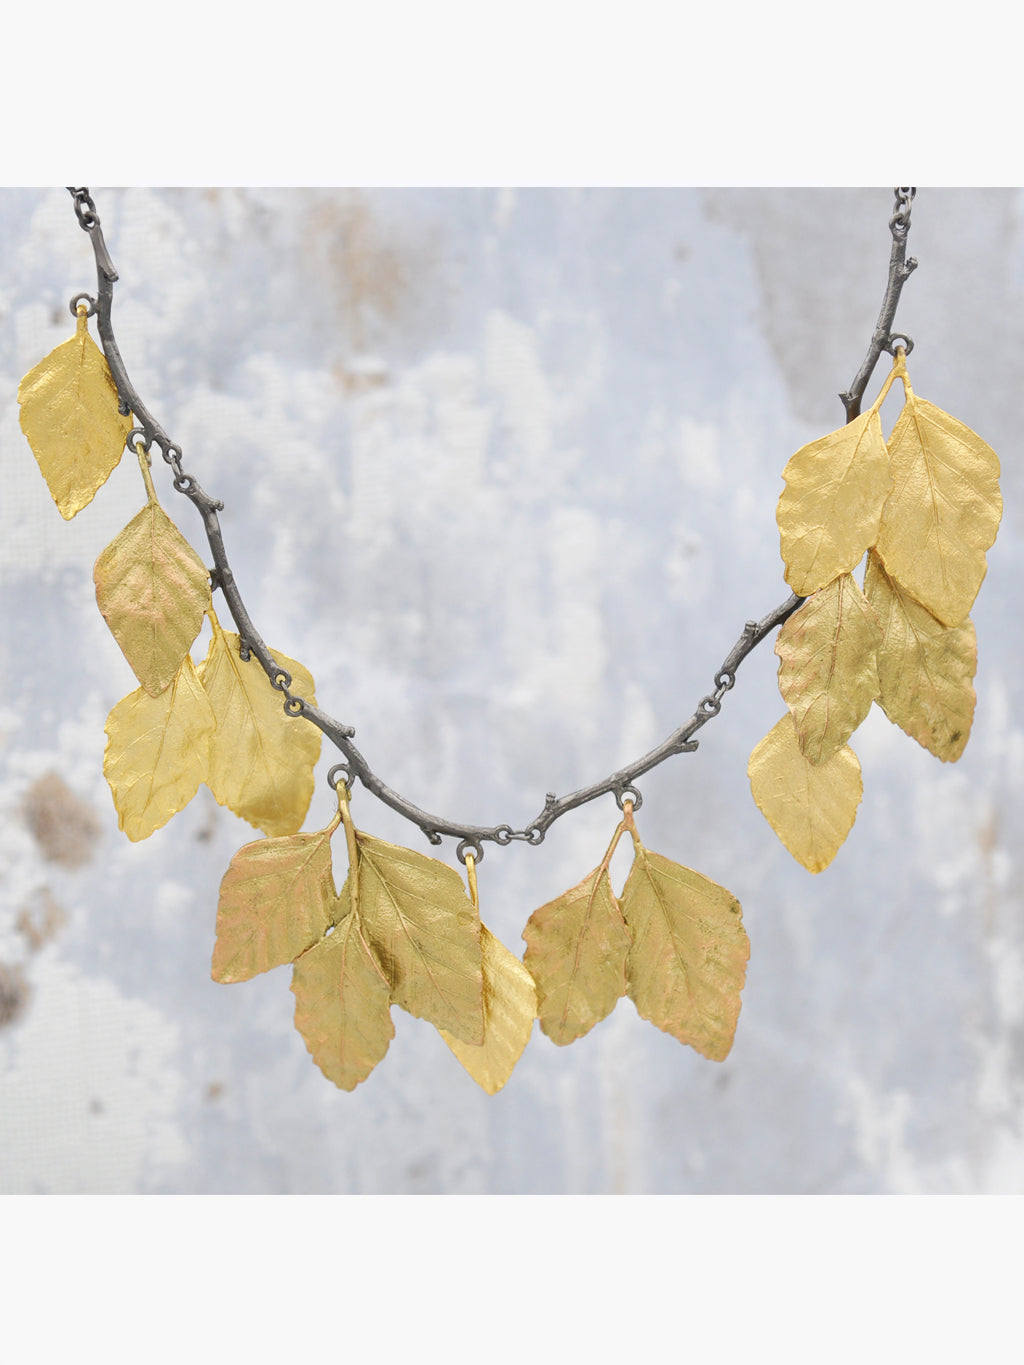 Cascading Autumn Leaves Necklace